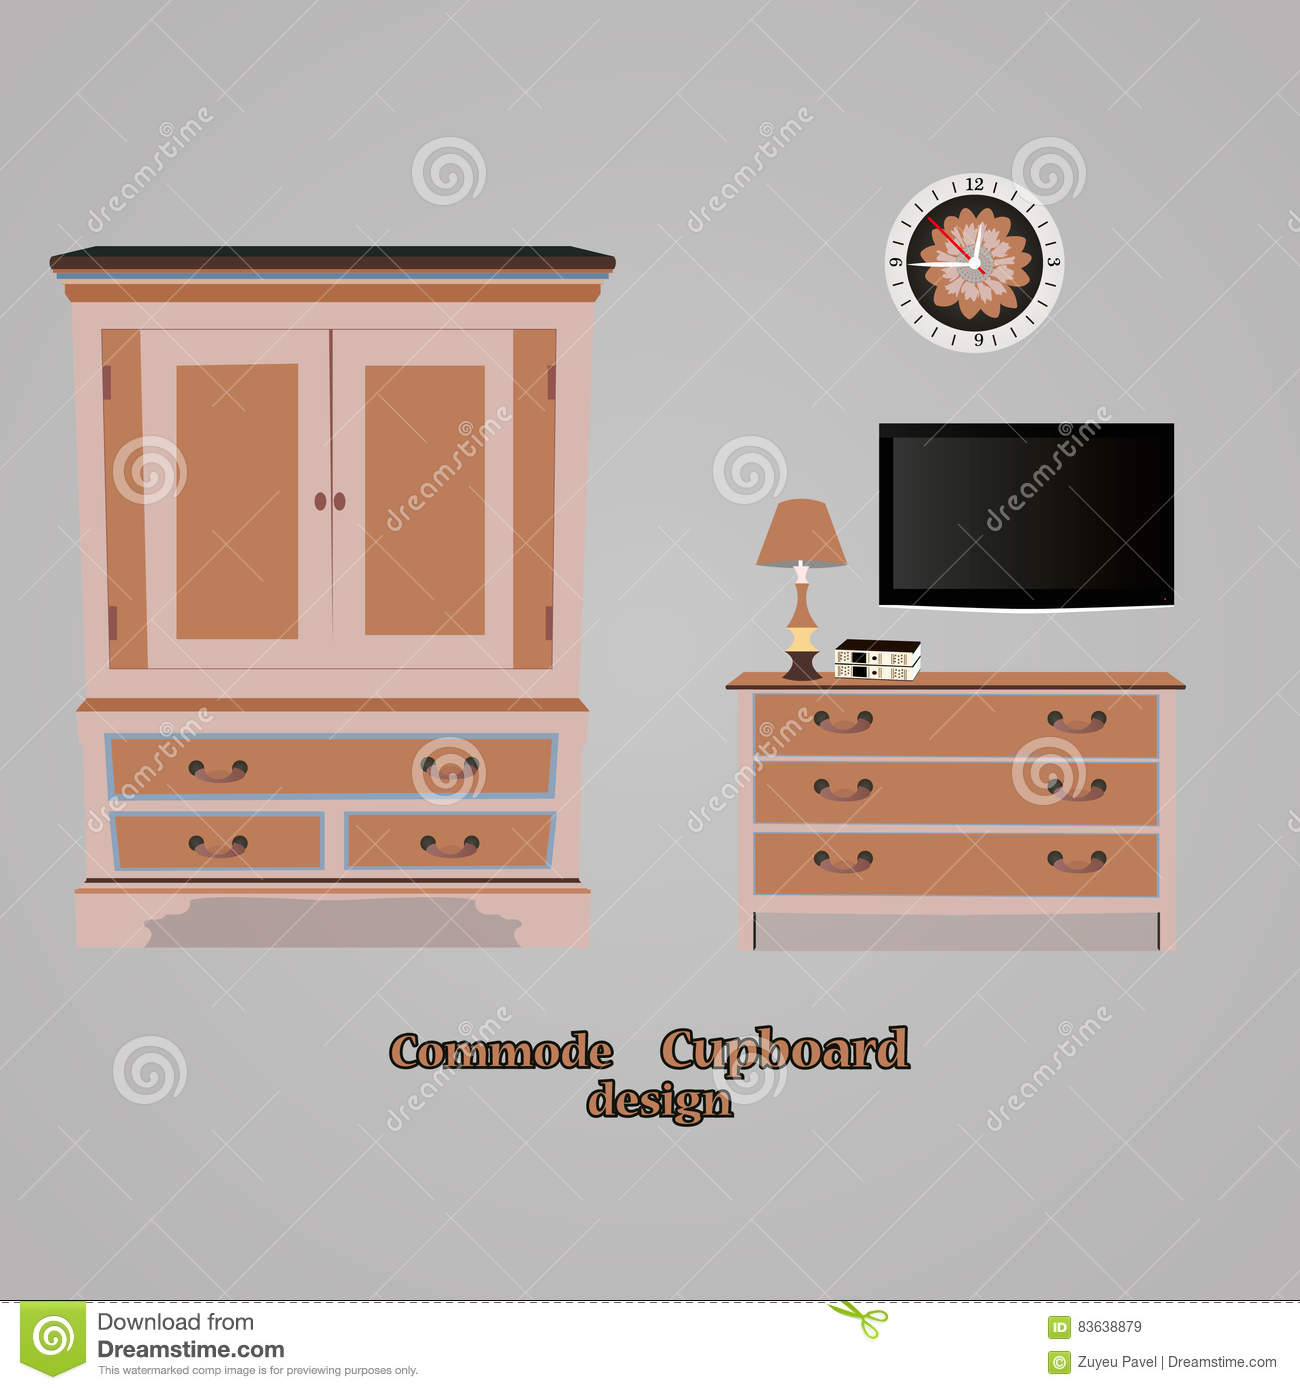 Empty Cupboard Cartoon: Modern Cupboard With Drawers Royalty-Free Stock